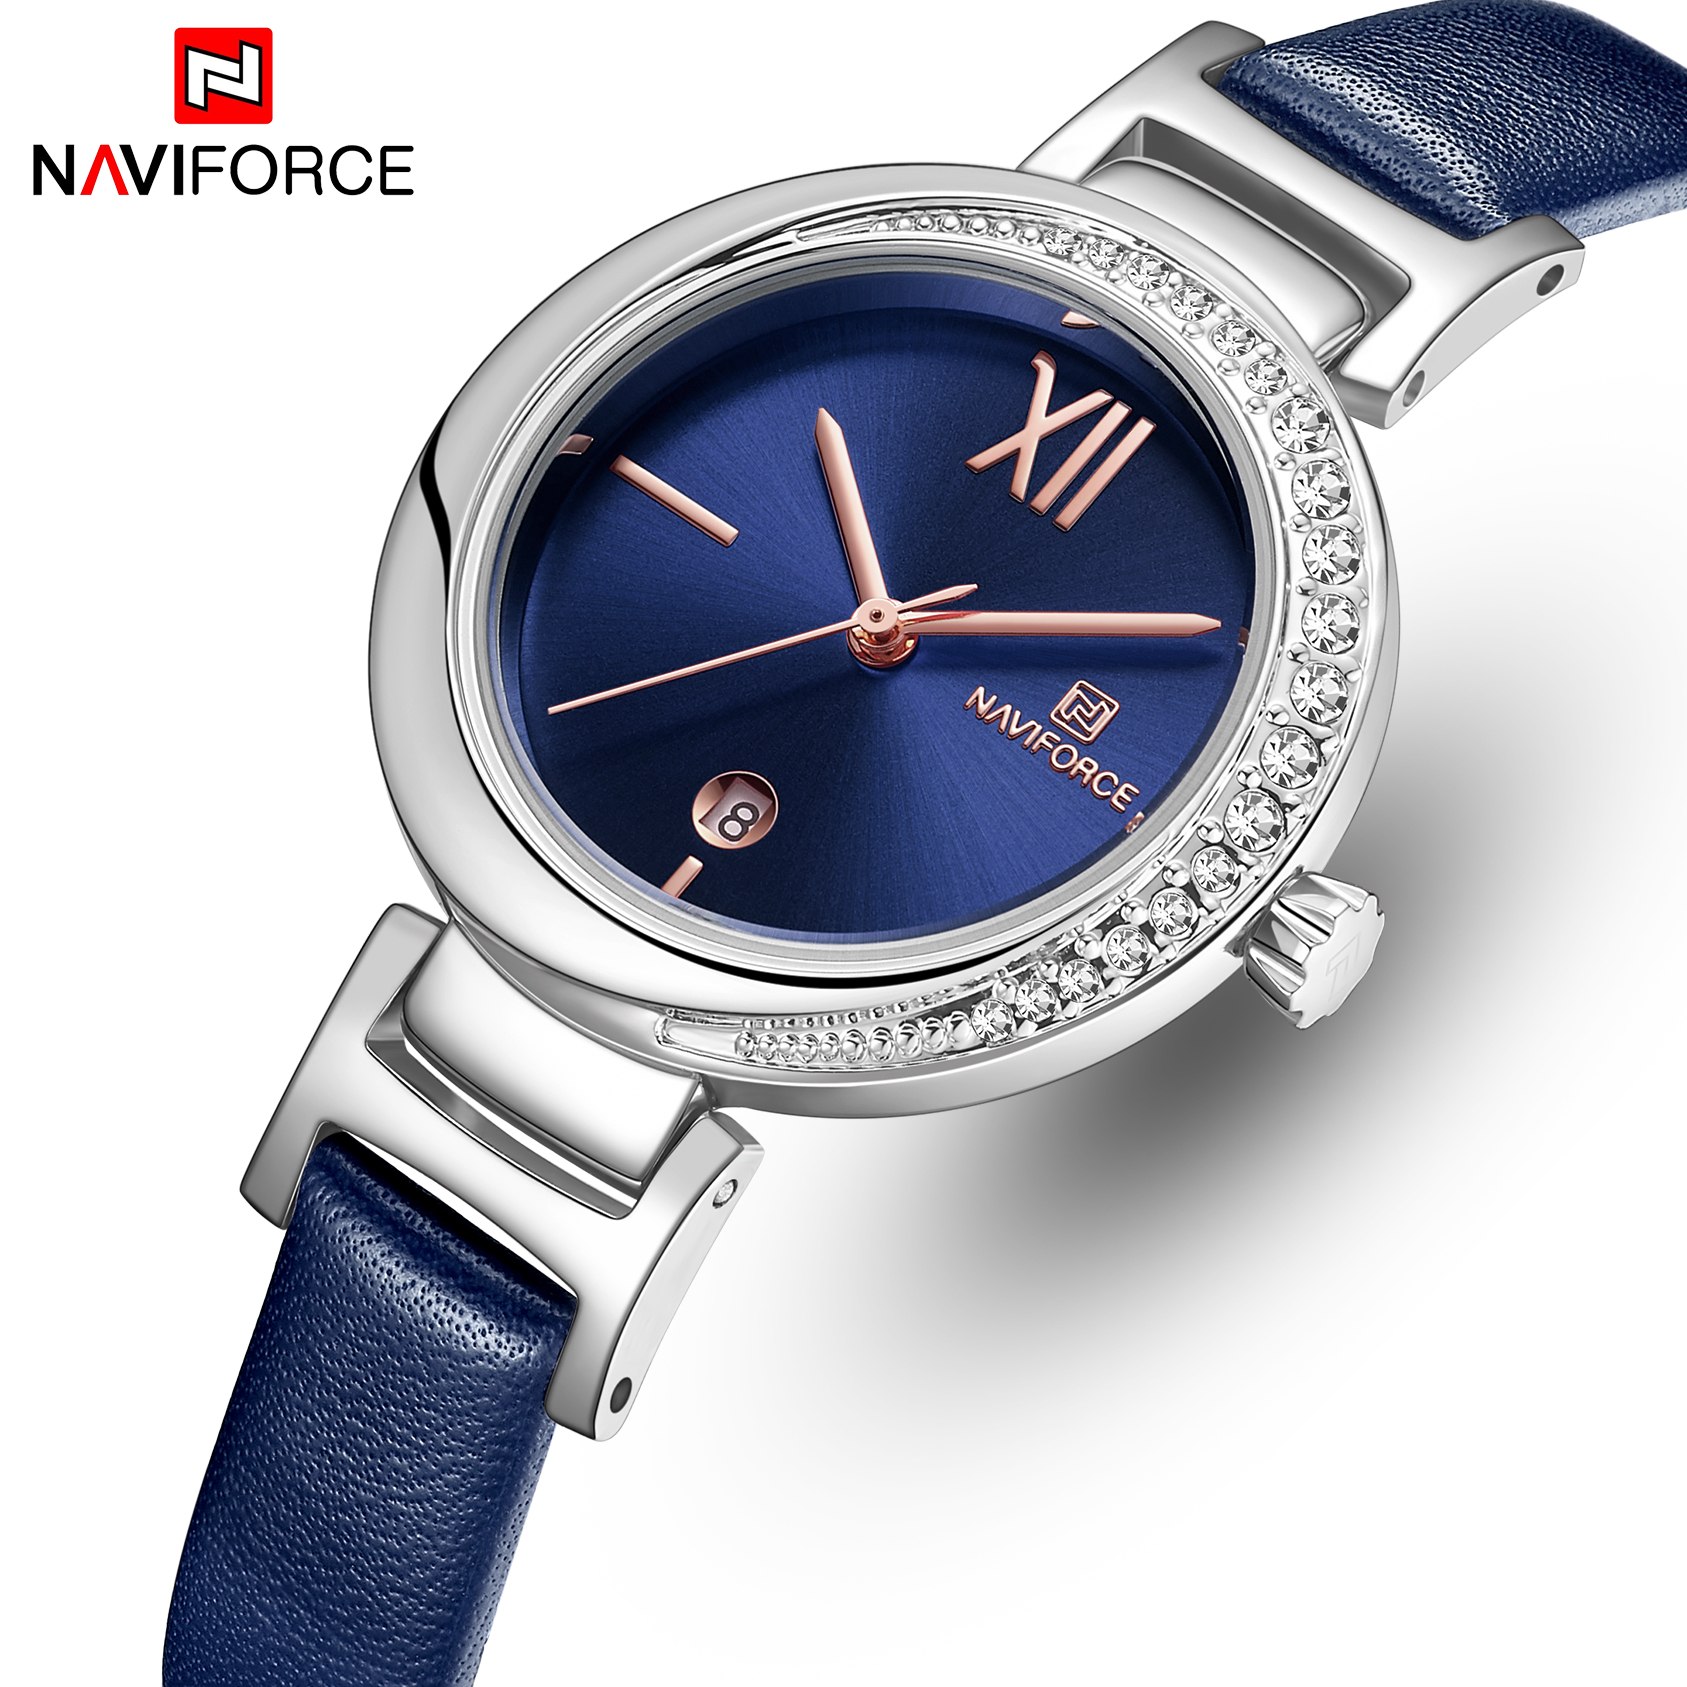 NAVIFORCE Watch Women Luxury Brand Ladies Quartz Wristwatch Leather Waterproof Watches Reloj Mujer Girl Clock Relogio Feminino